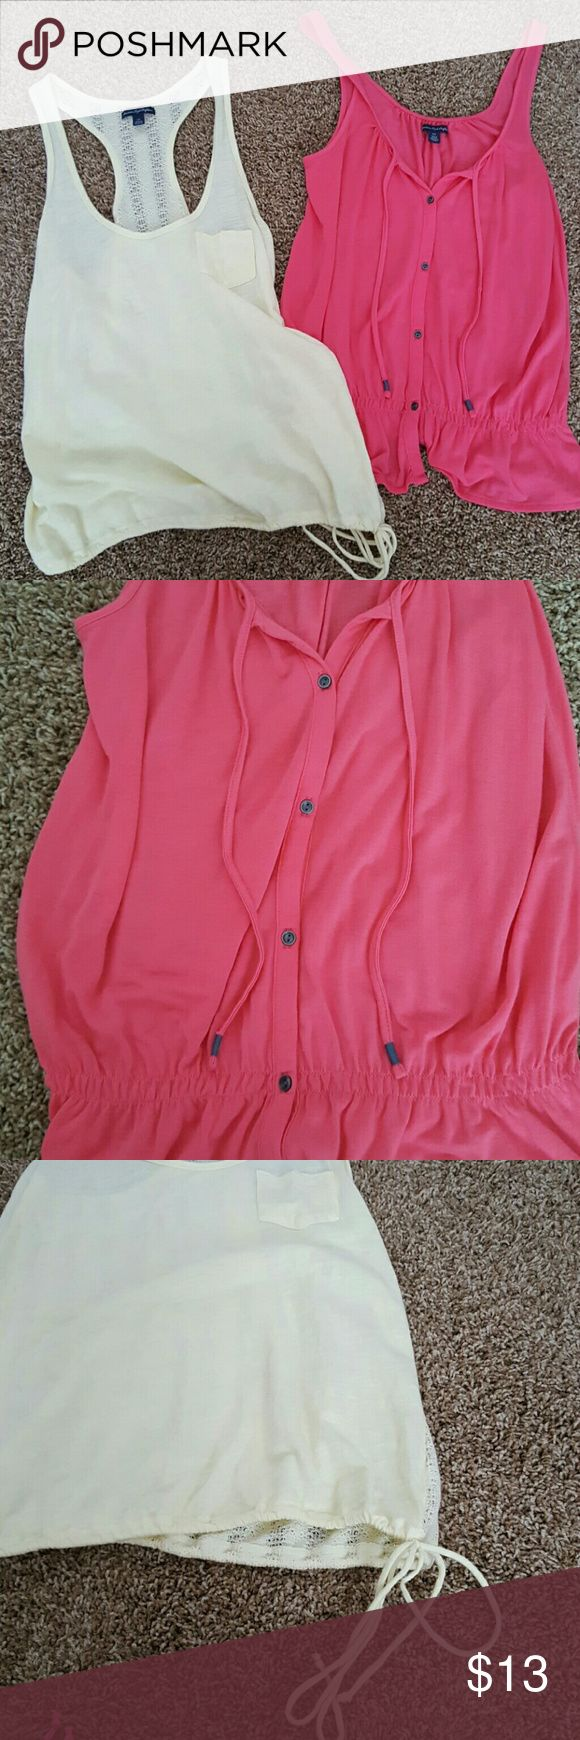 **Discounted Shipping**American Eagle Bundle Two small tanks. Pink and light yellow. In great condition, not worn very much. American Eagle Outfitters Tops Tank Tops